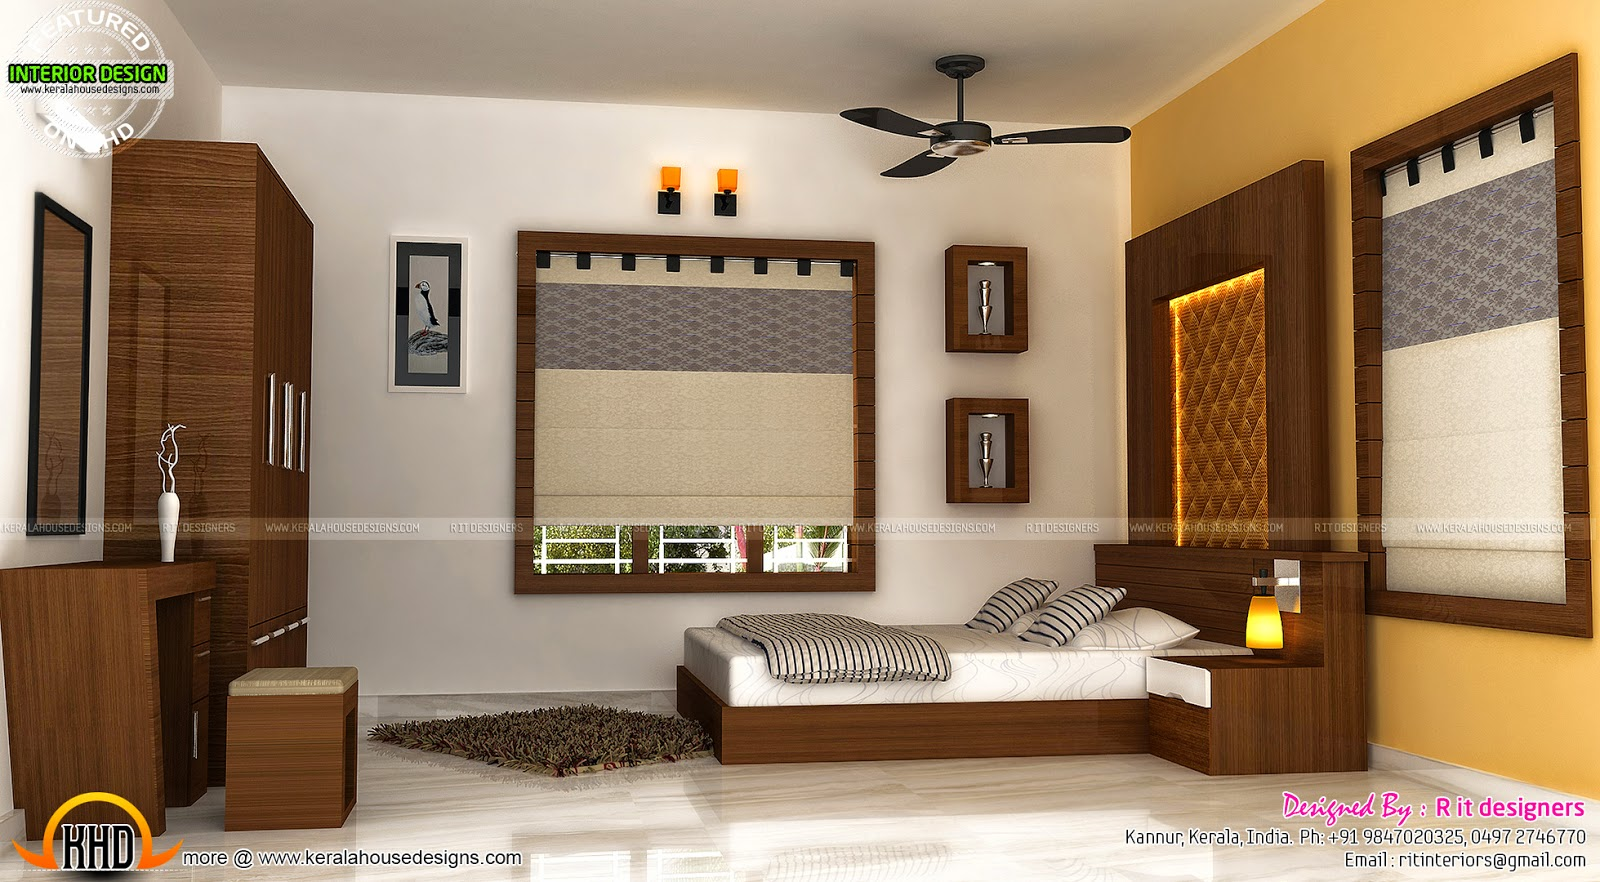 Staircase bedroom dining interiors kerala home design for Interior designs at home